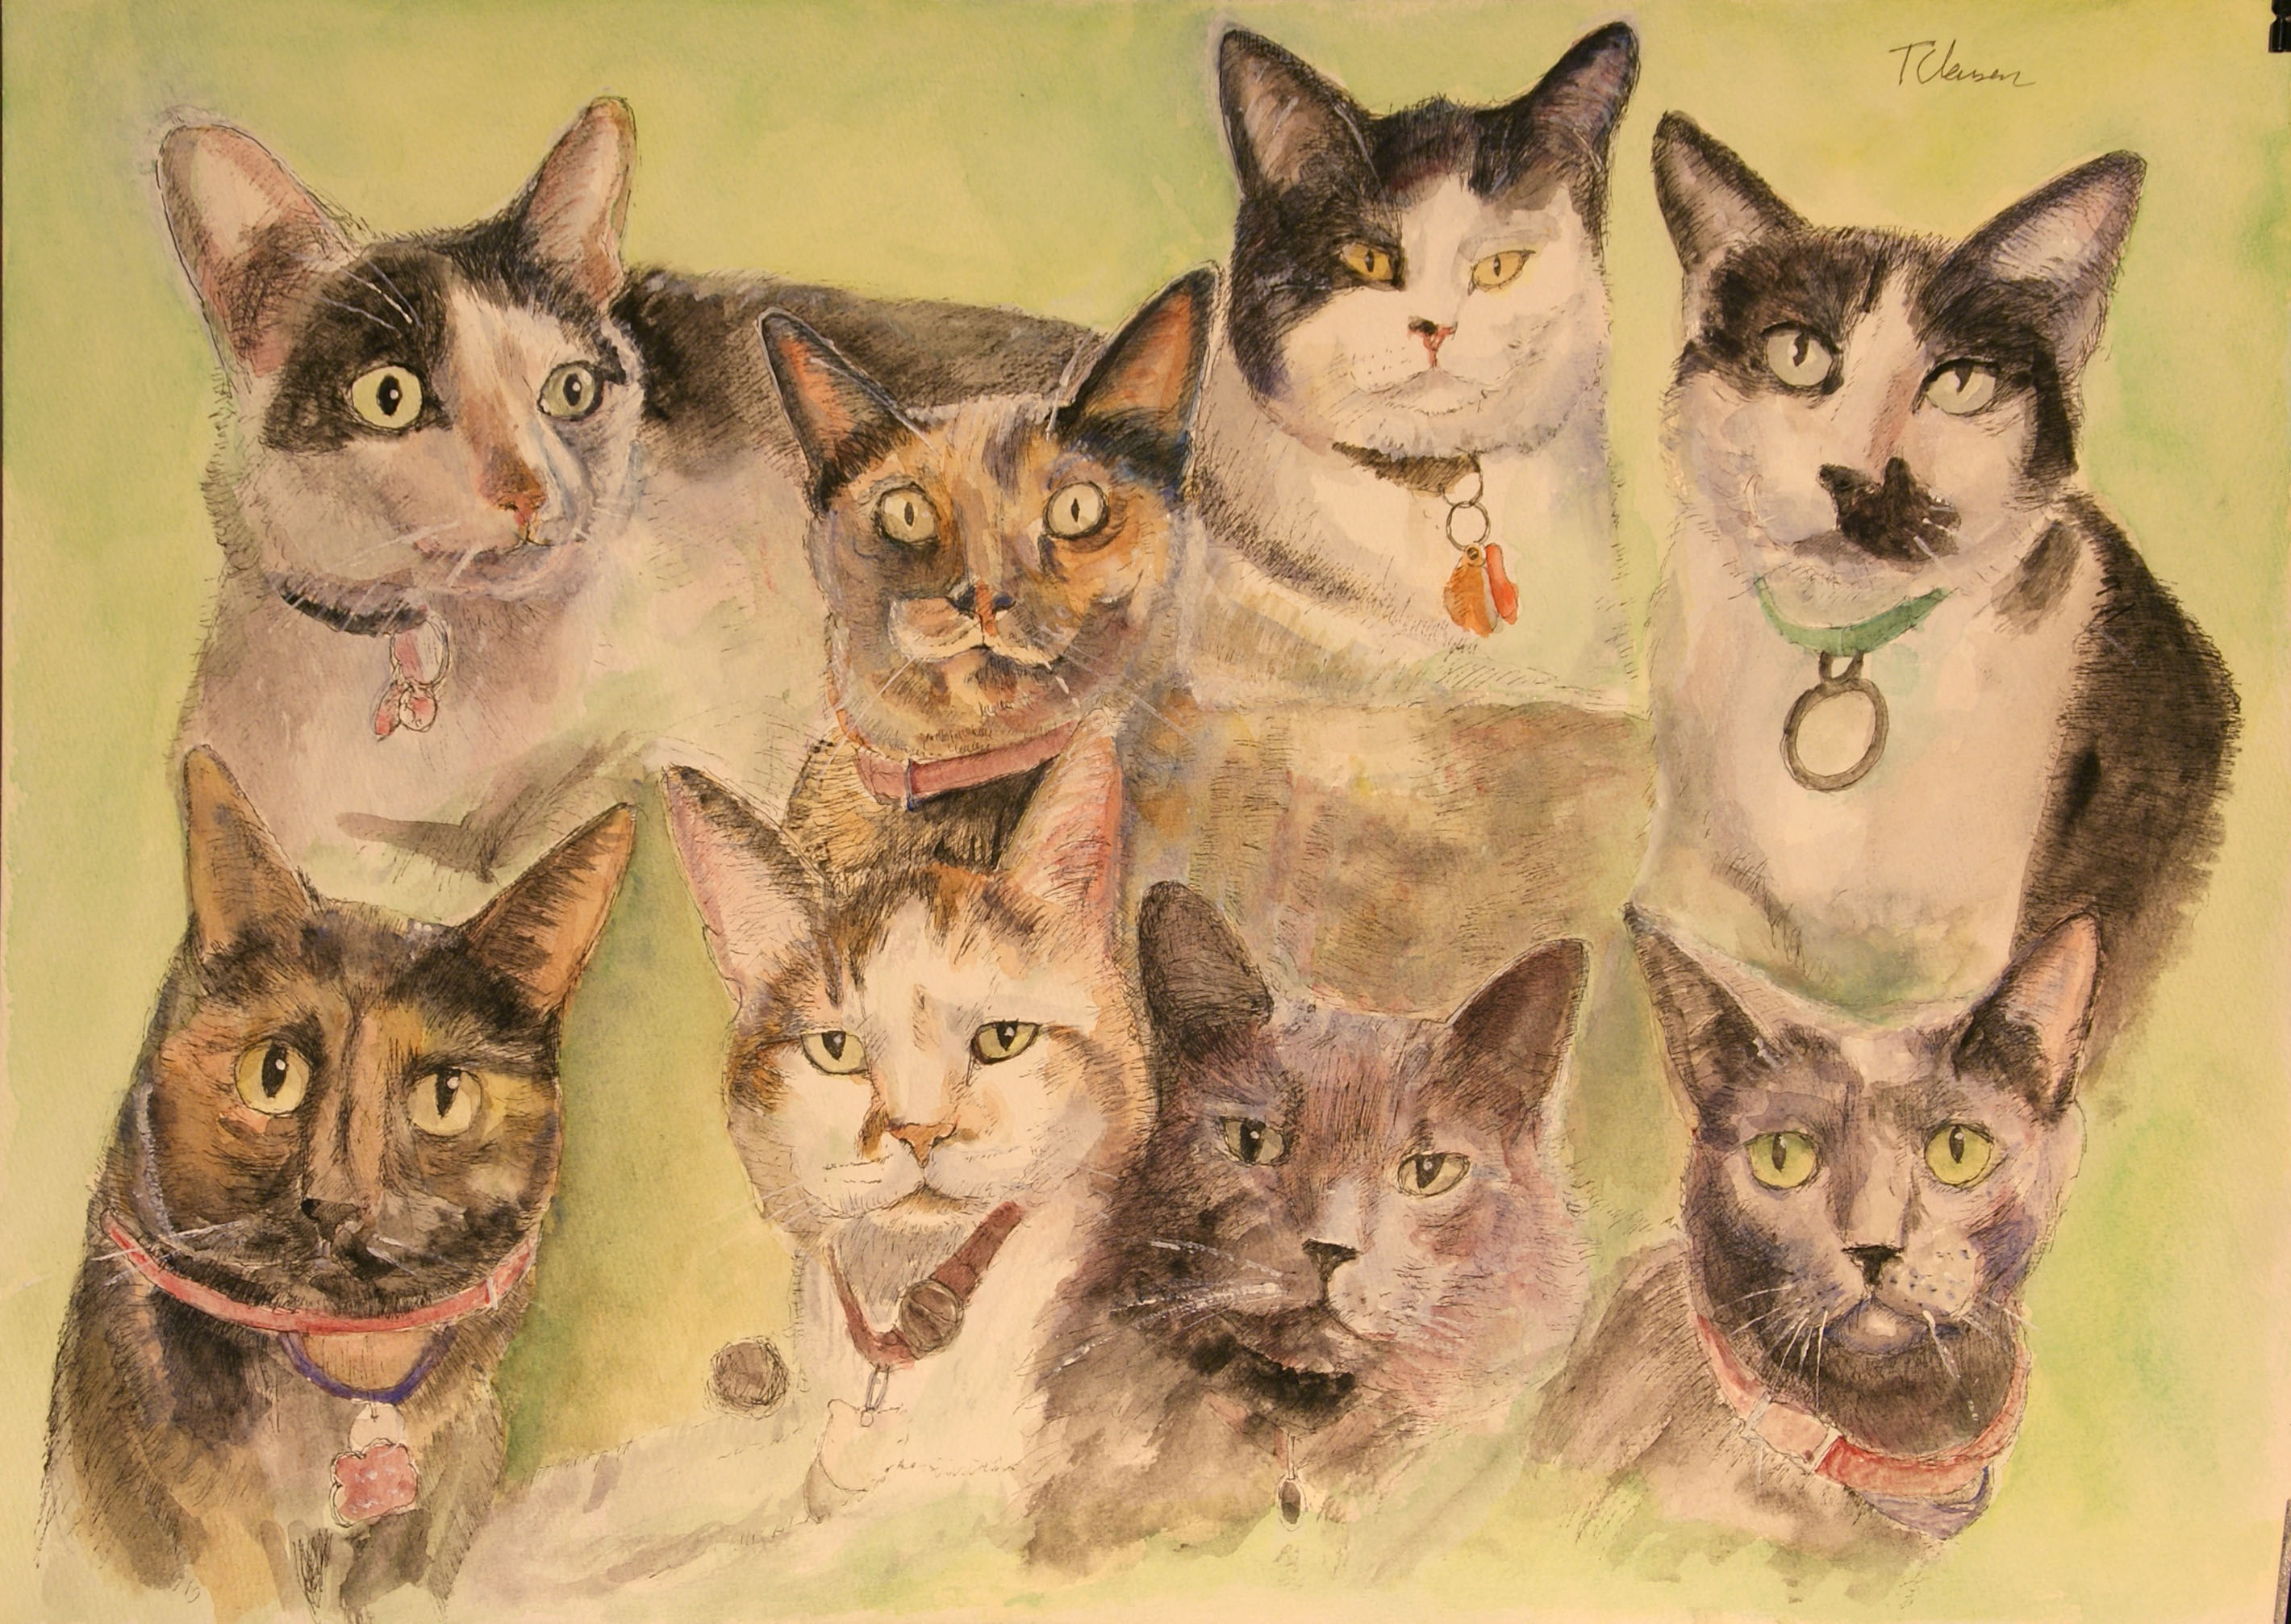 thomas-dalsgaard-clausen-2015-12-15a portrait of 8 cats.jpg